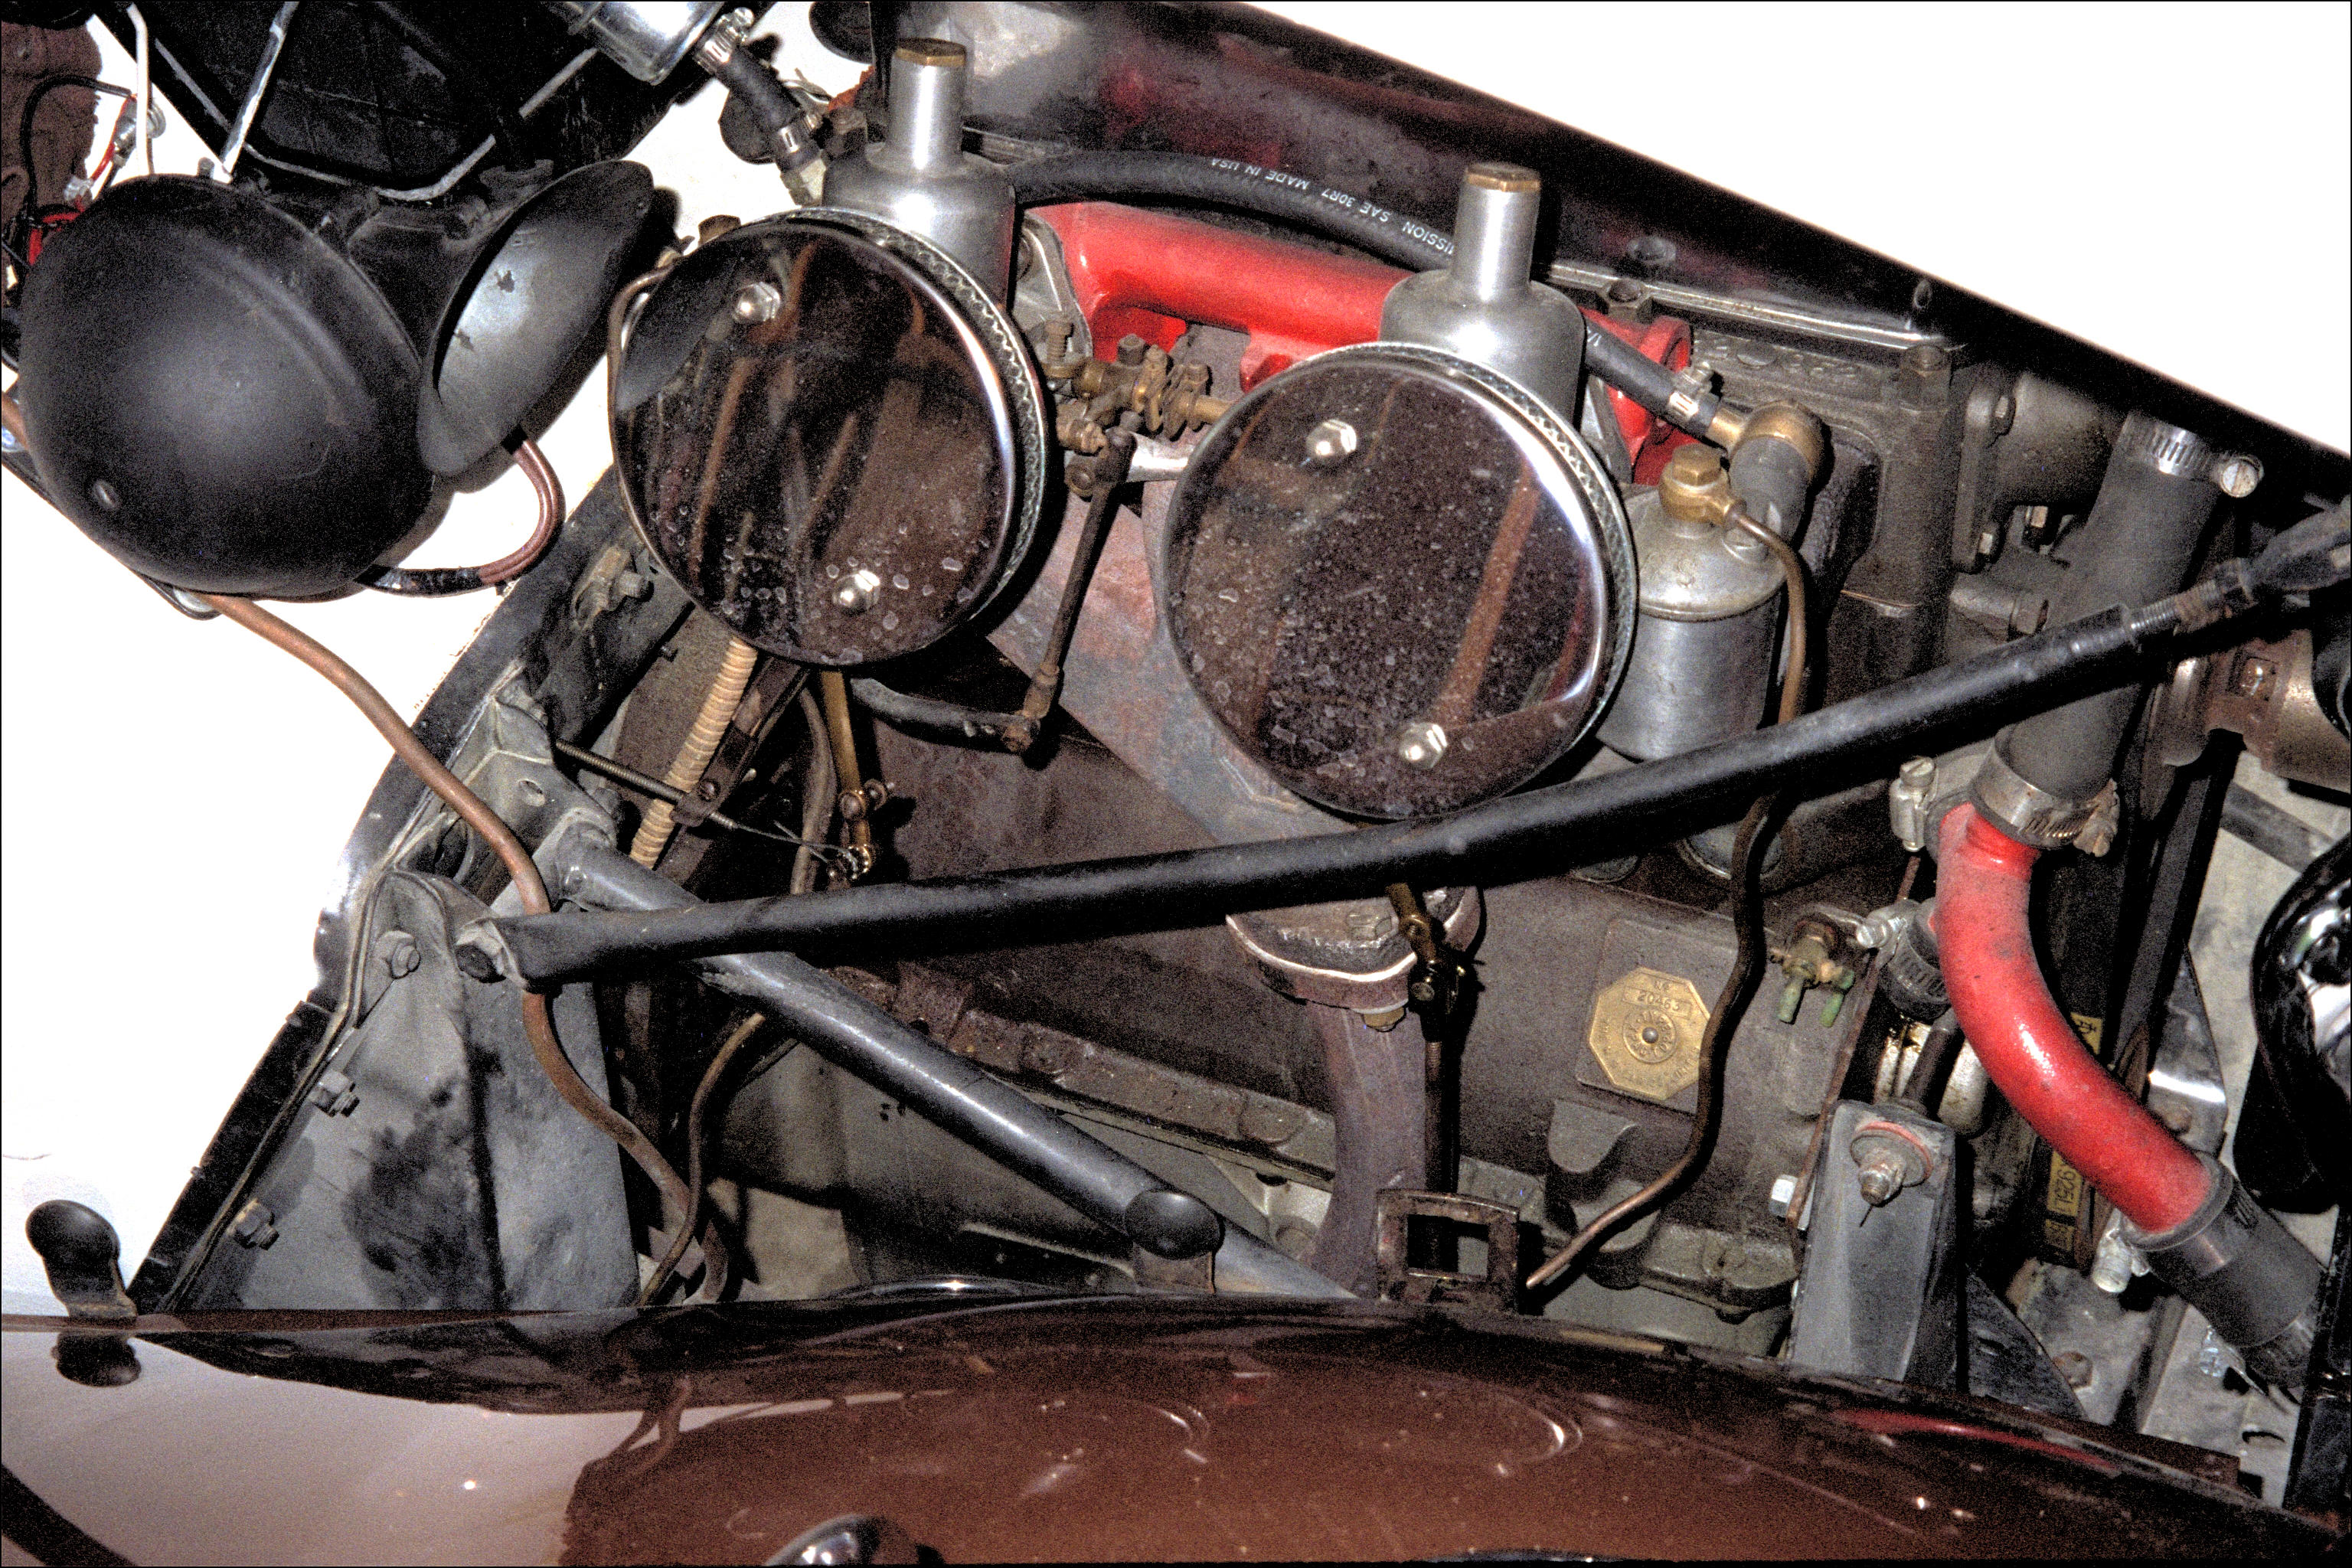 Engine under bonnet close up, from right